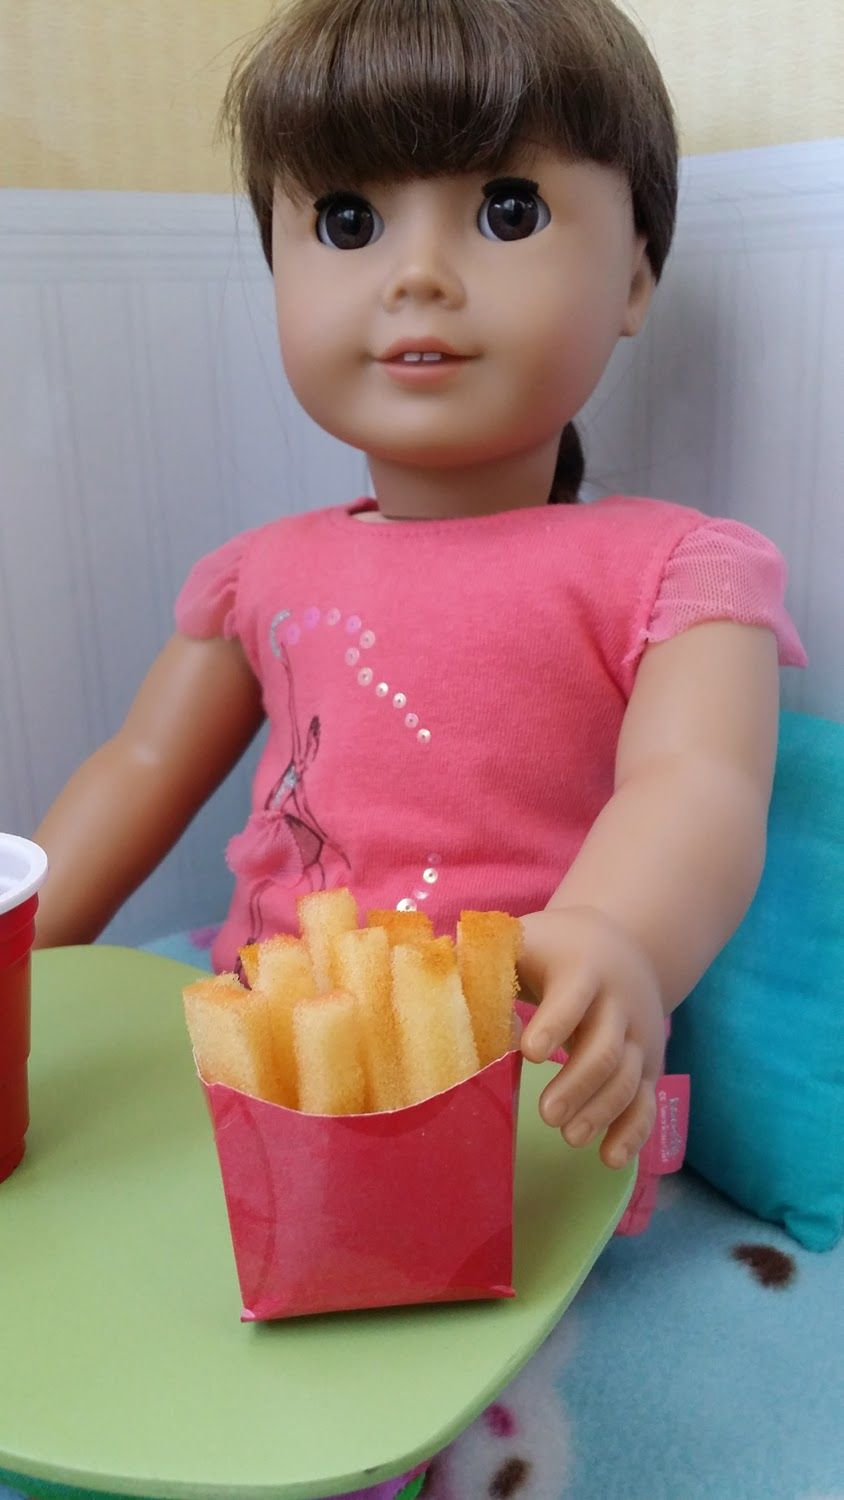 American Girl Doll Crafts and Fun!: Craft: Make Doll French Fries #americangirldollcrafts